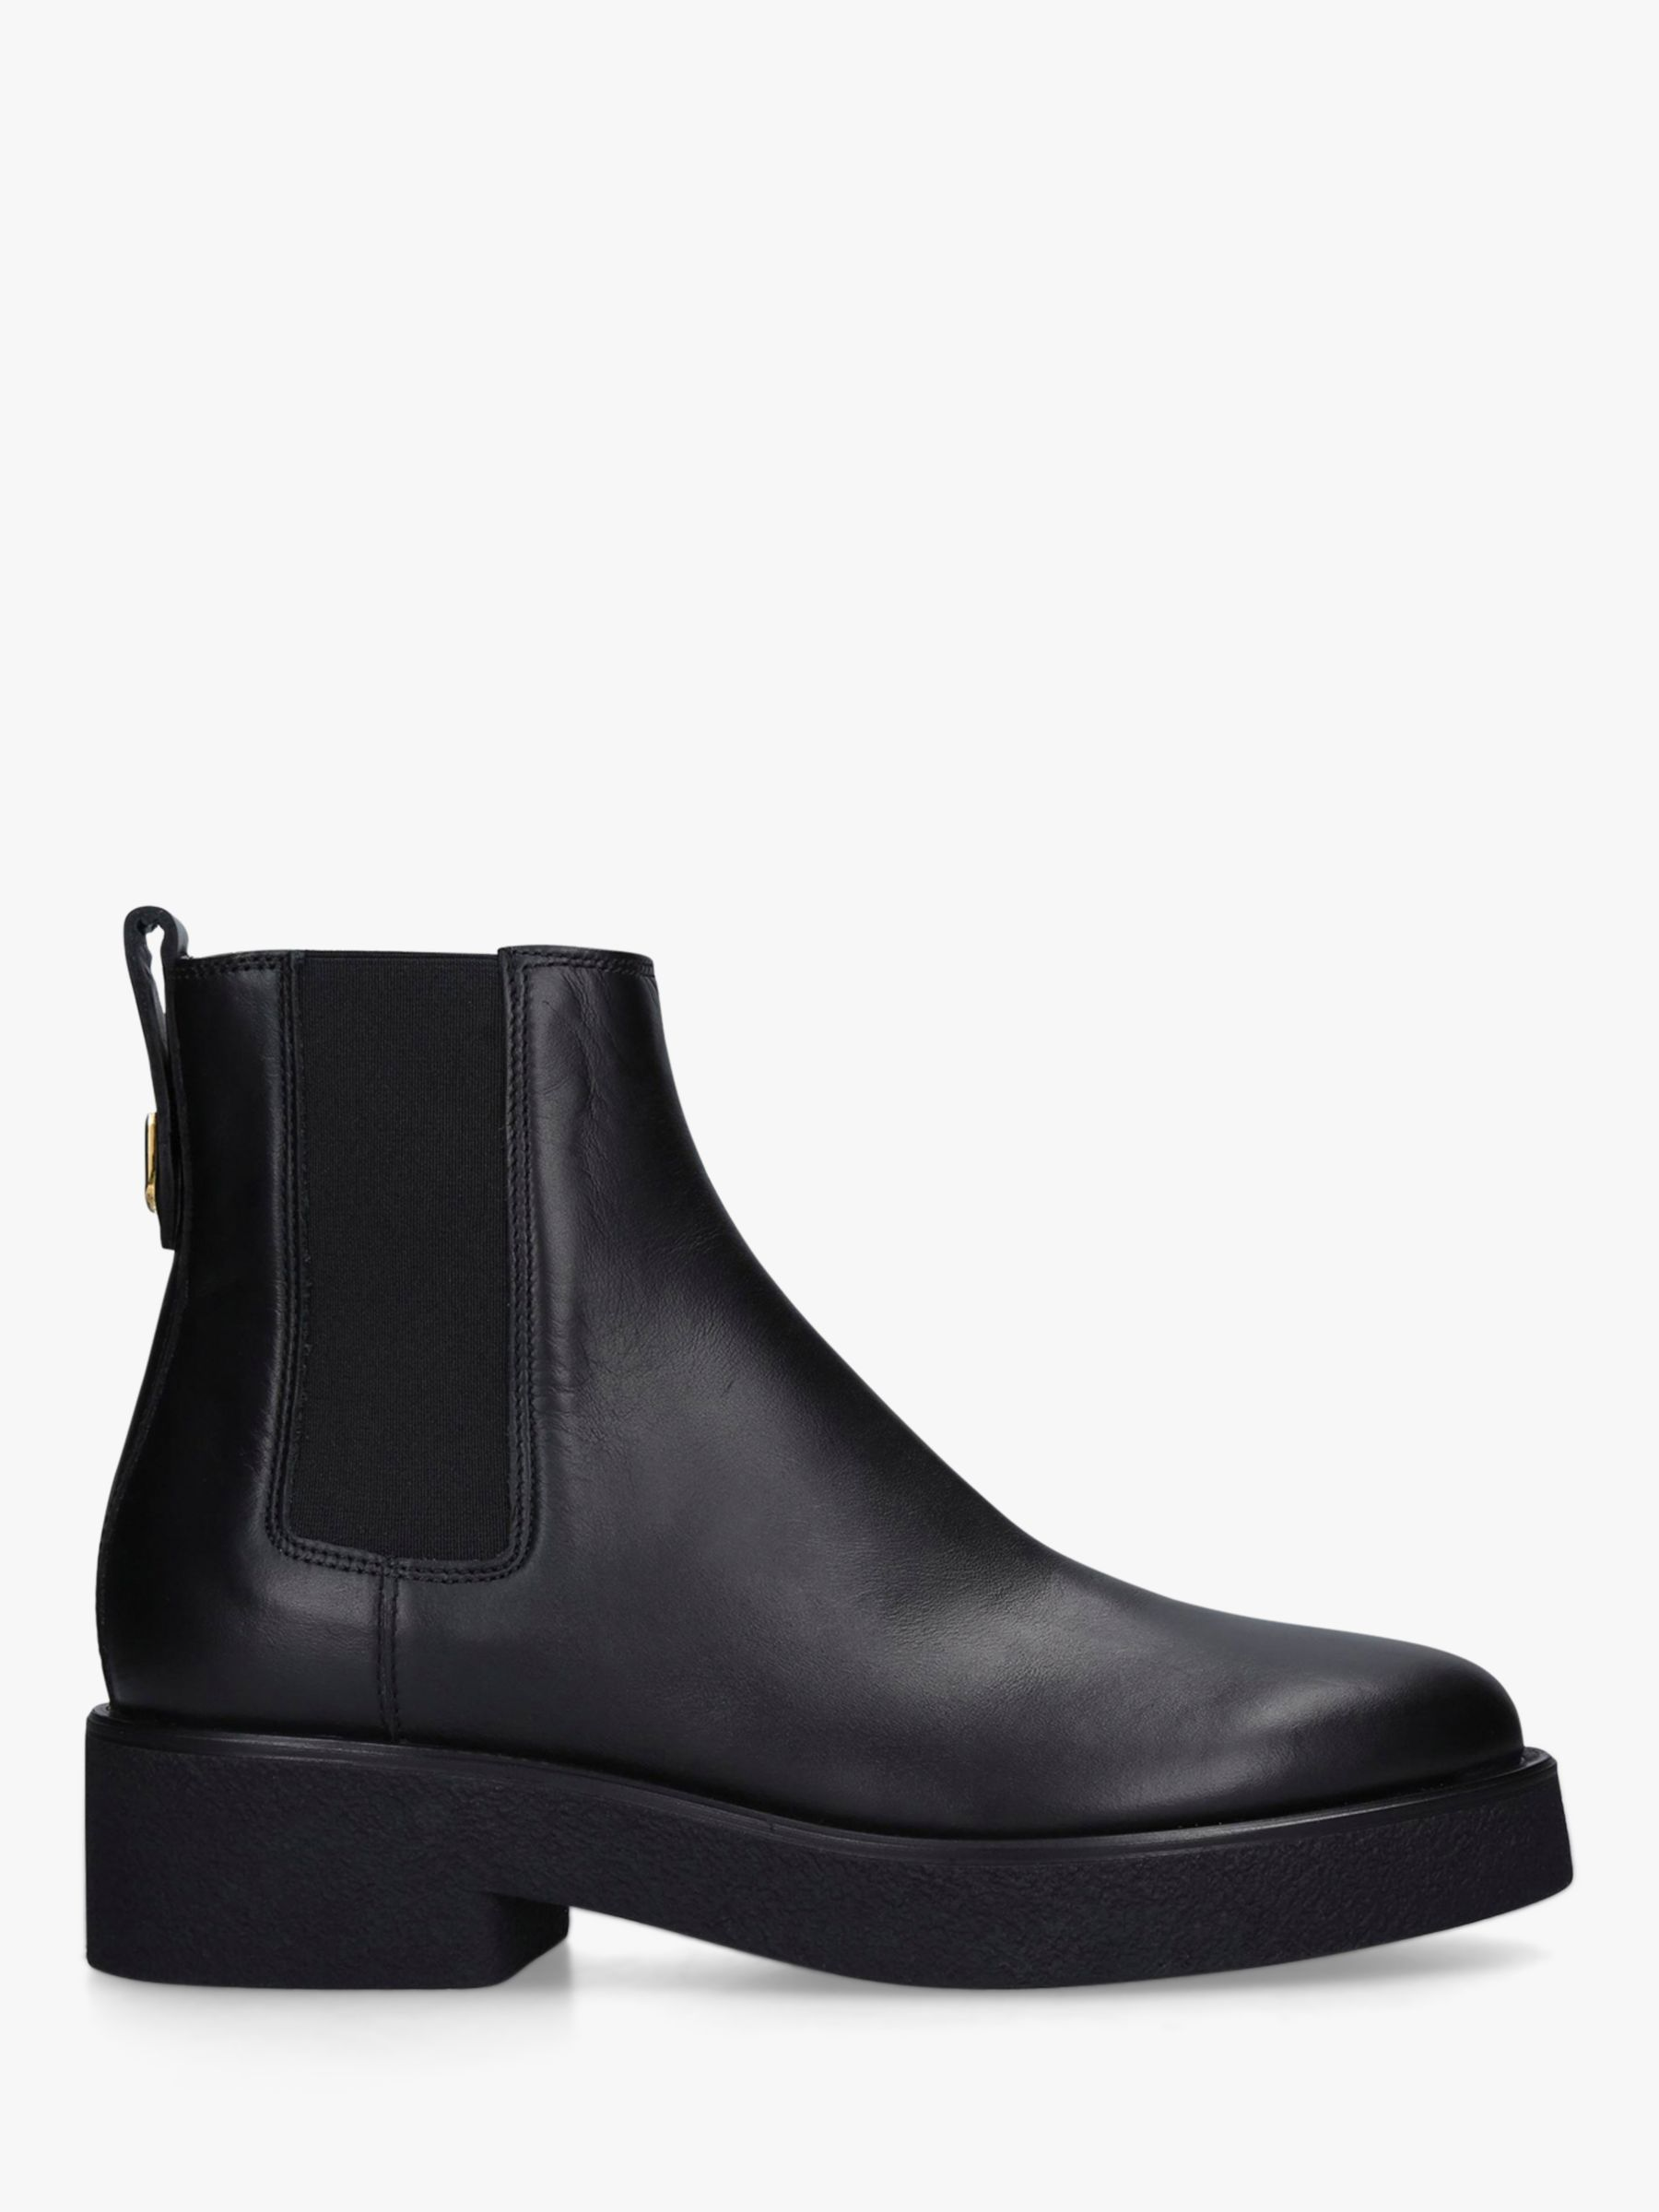 Furla Furla Greta Leather Ankle Boots, Black